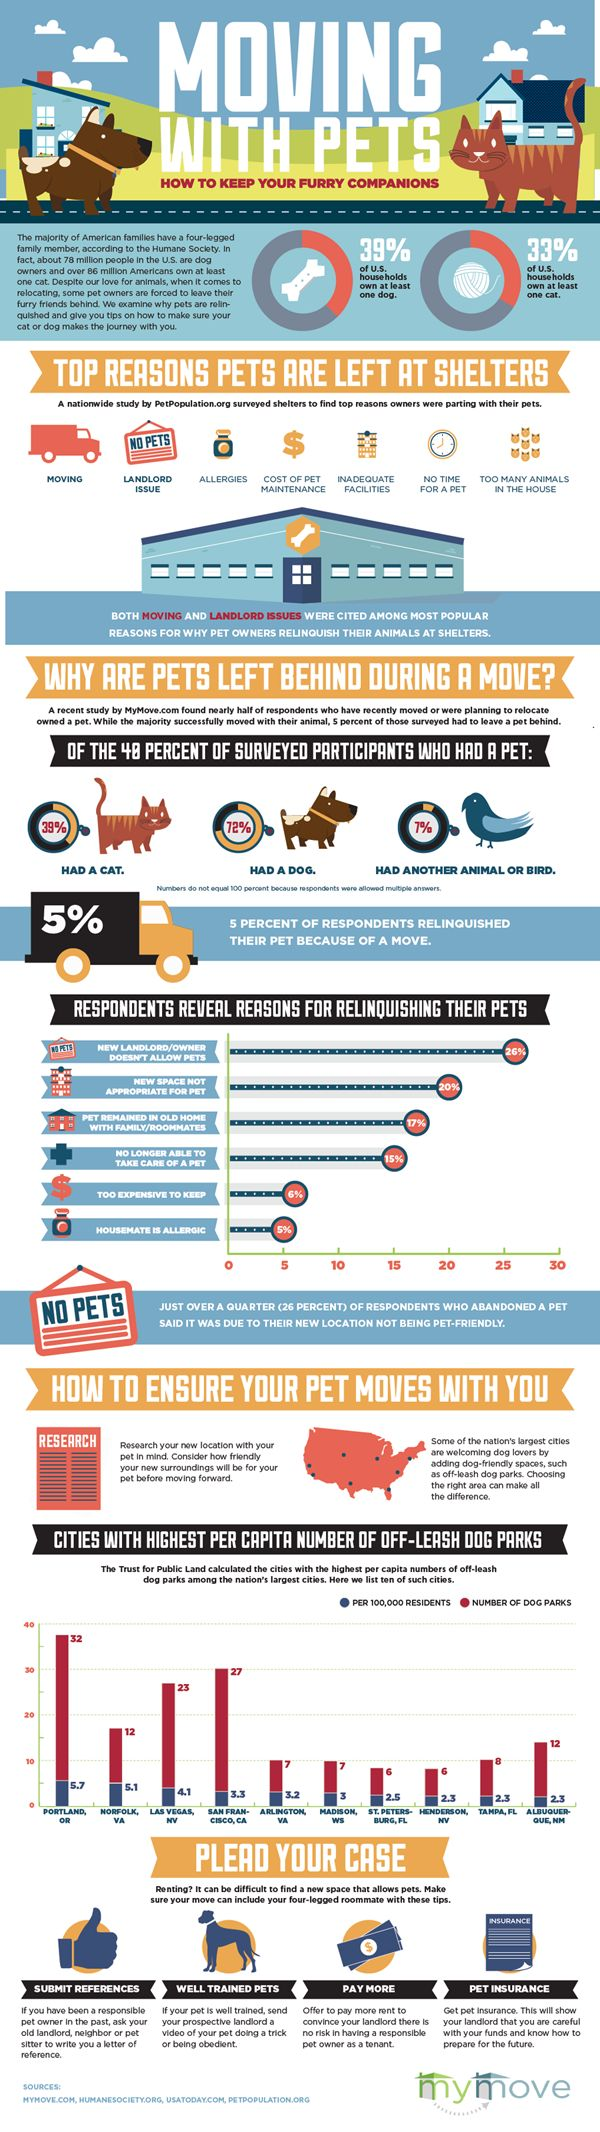 #Moving is a top reason owners relinquish #pets. This #infographic has all the details plus tips for relocating with your furry companions.